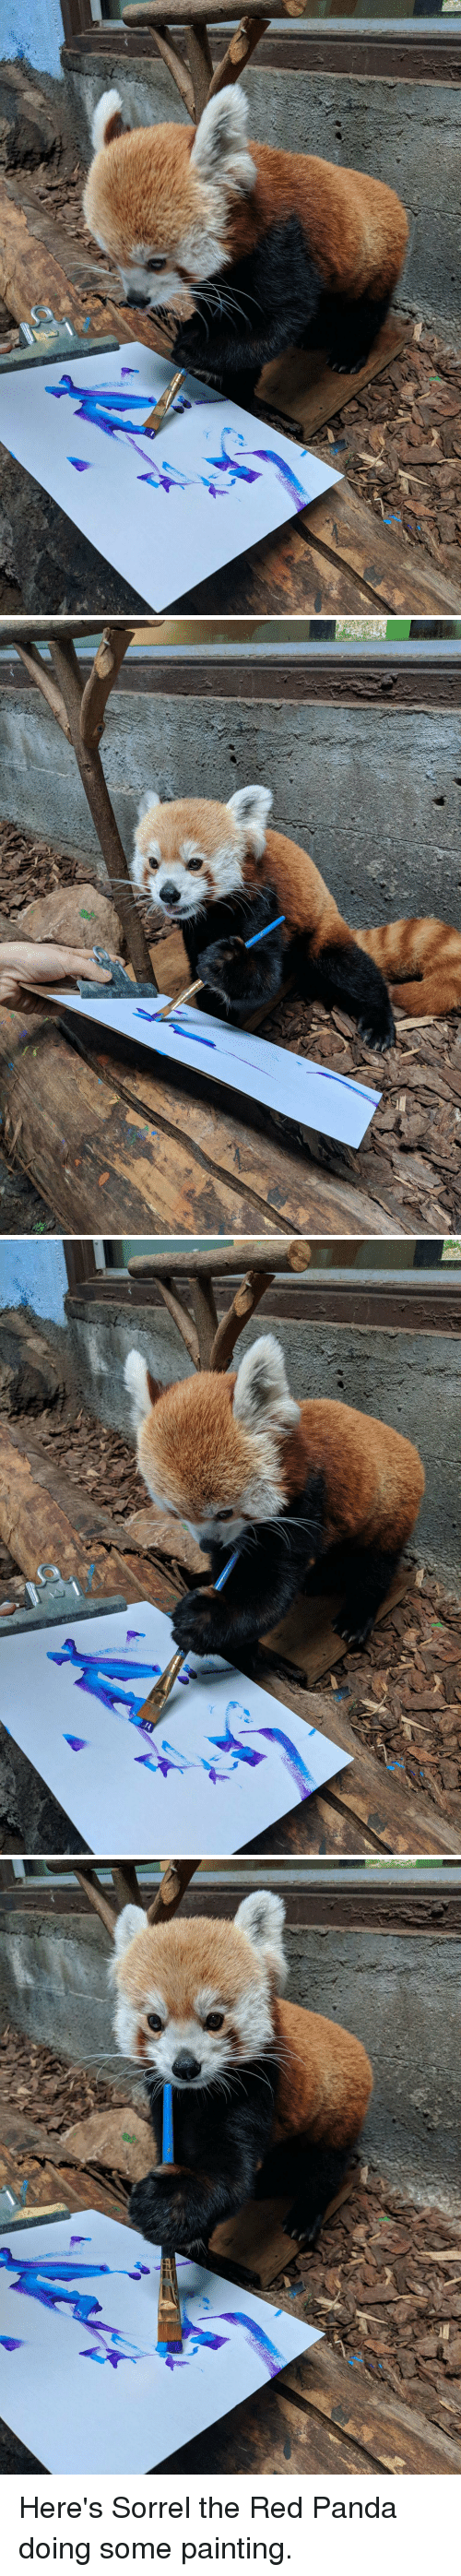 Panda, Red, and Red Panda: Here's Sorrel the Red Panda doing some painting.